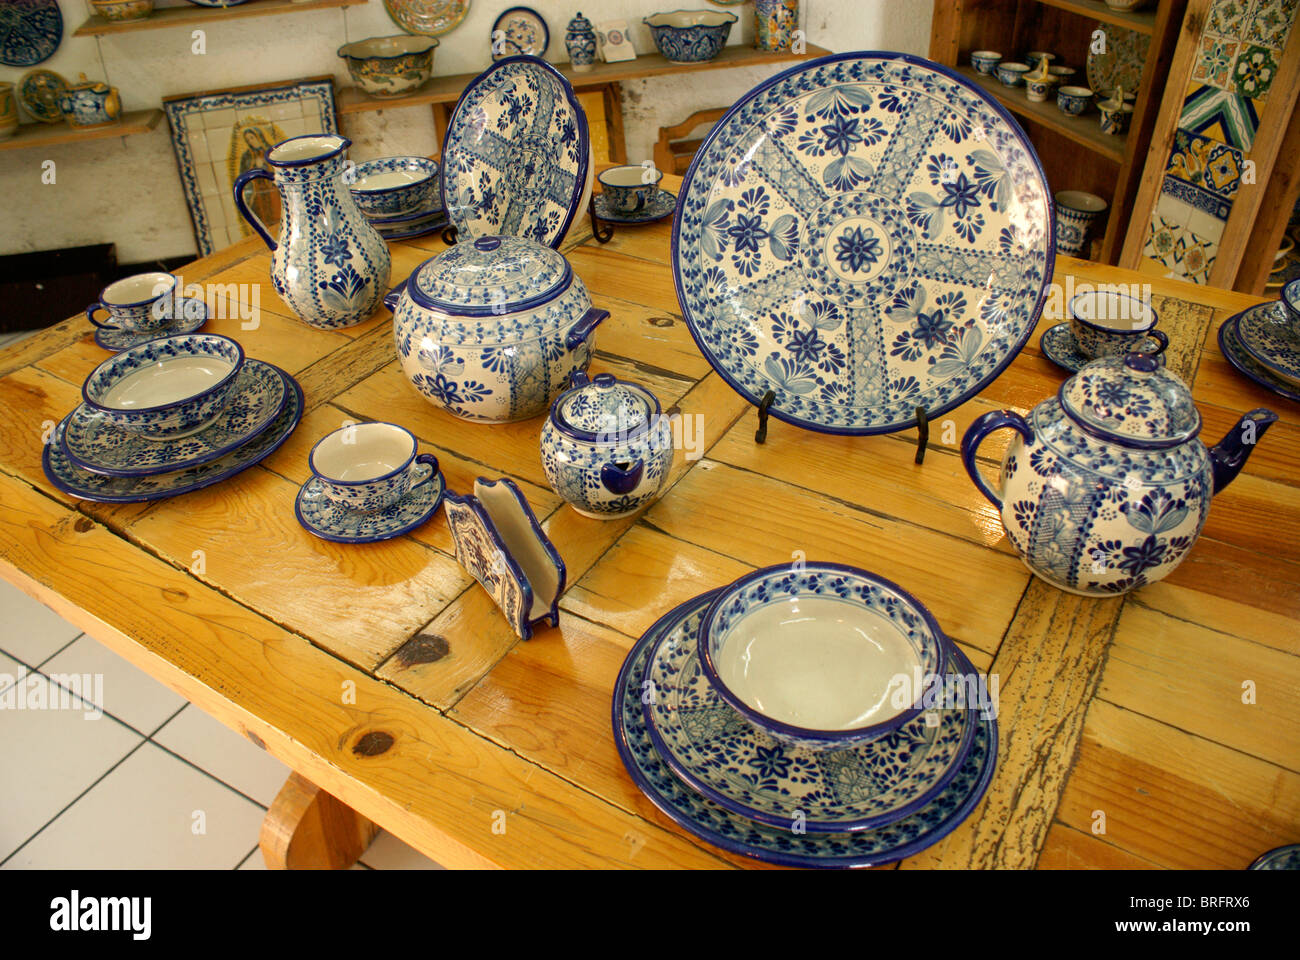 Genuine blue and white Mexican Talavera pottery for sale in Cholula, Puebla, Mexico. - Stock Image